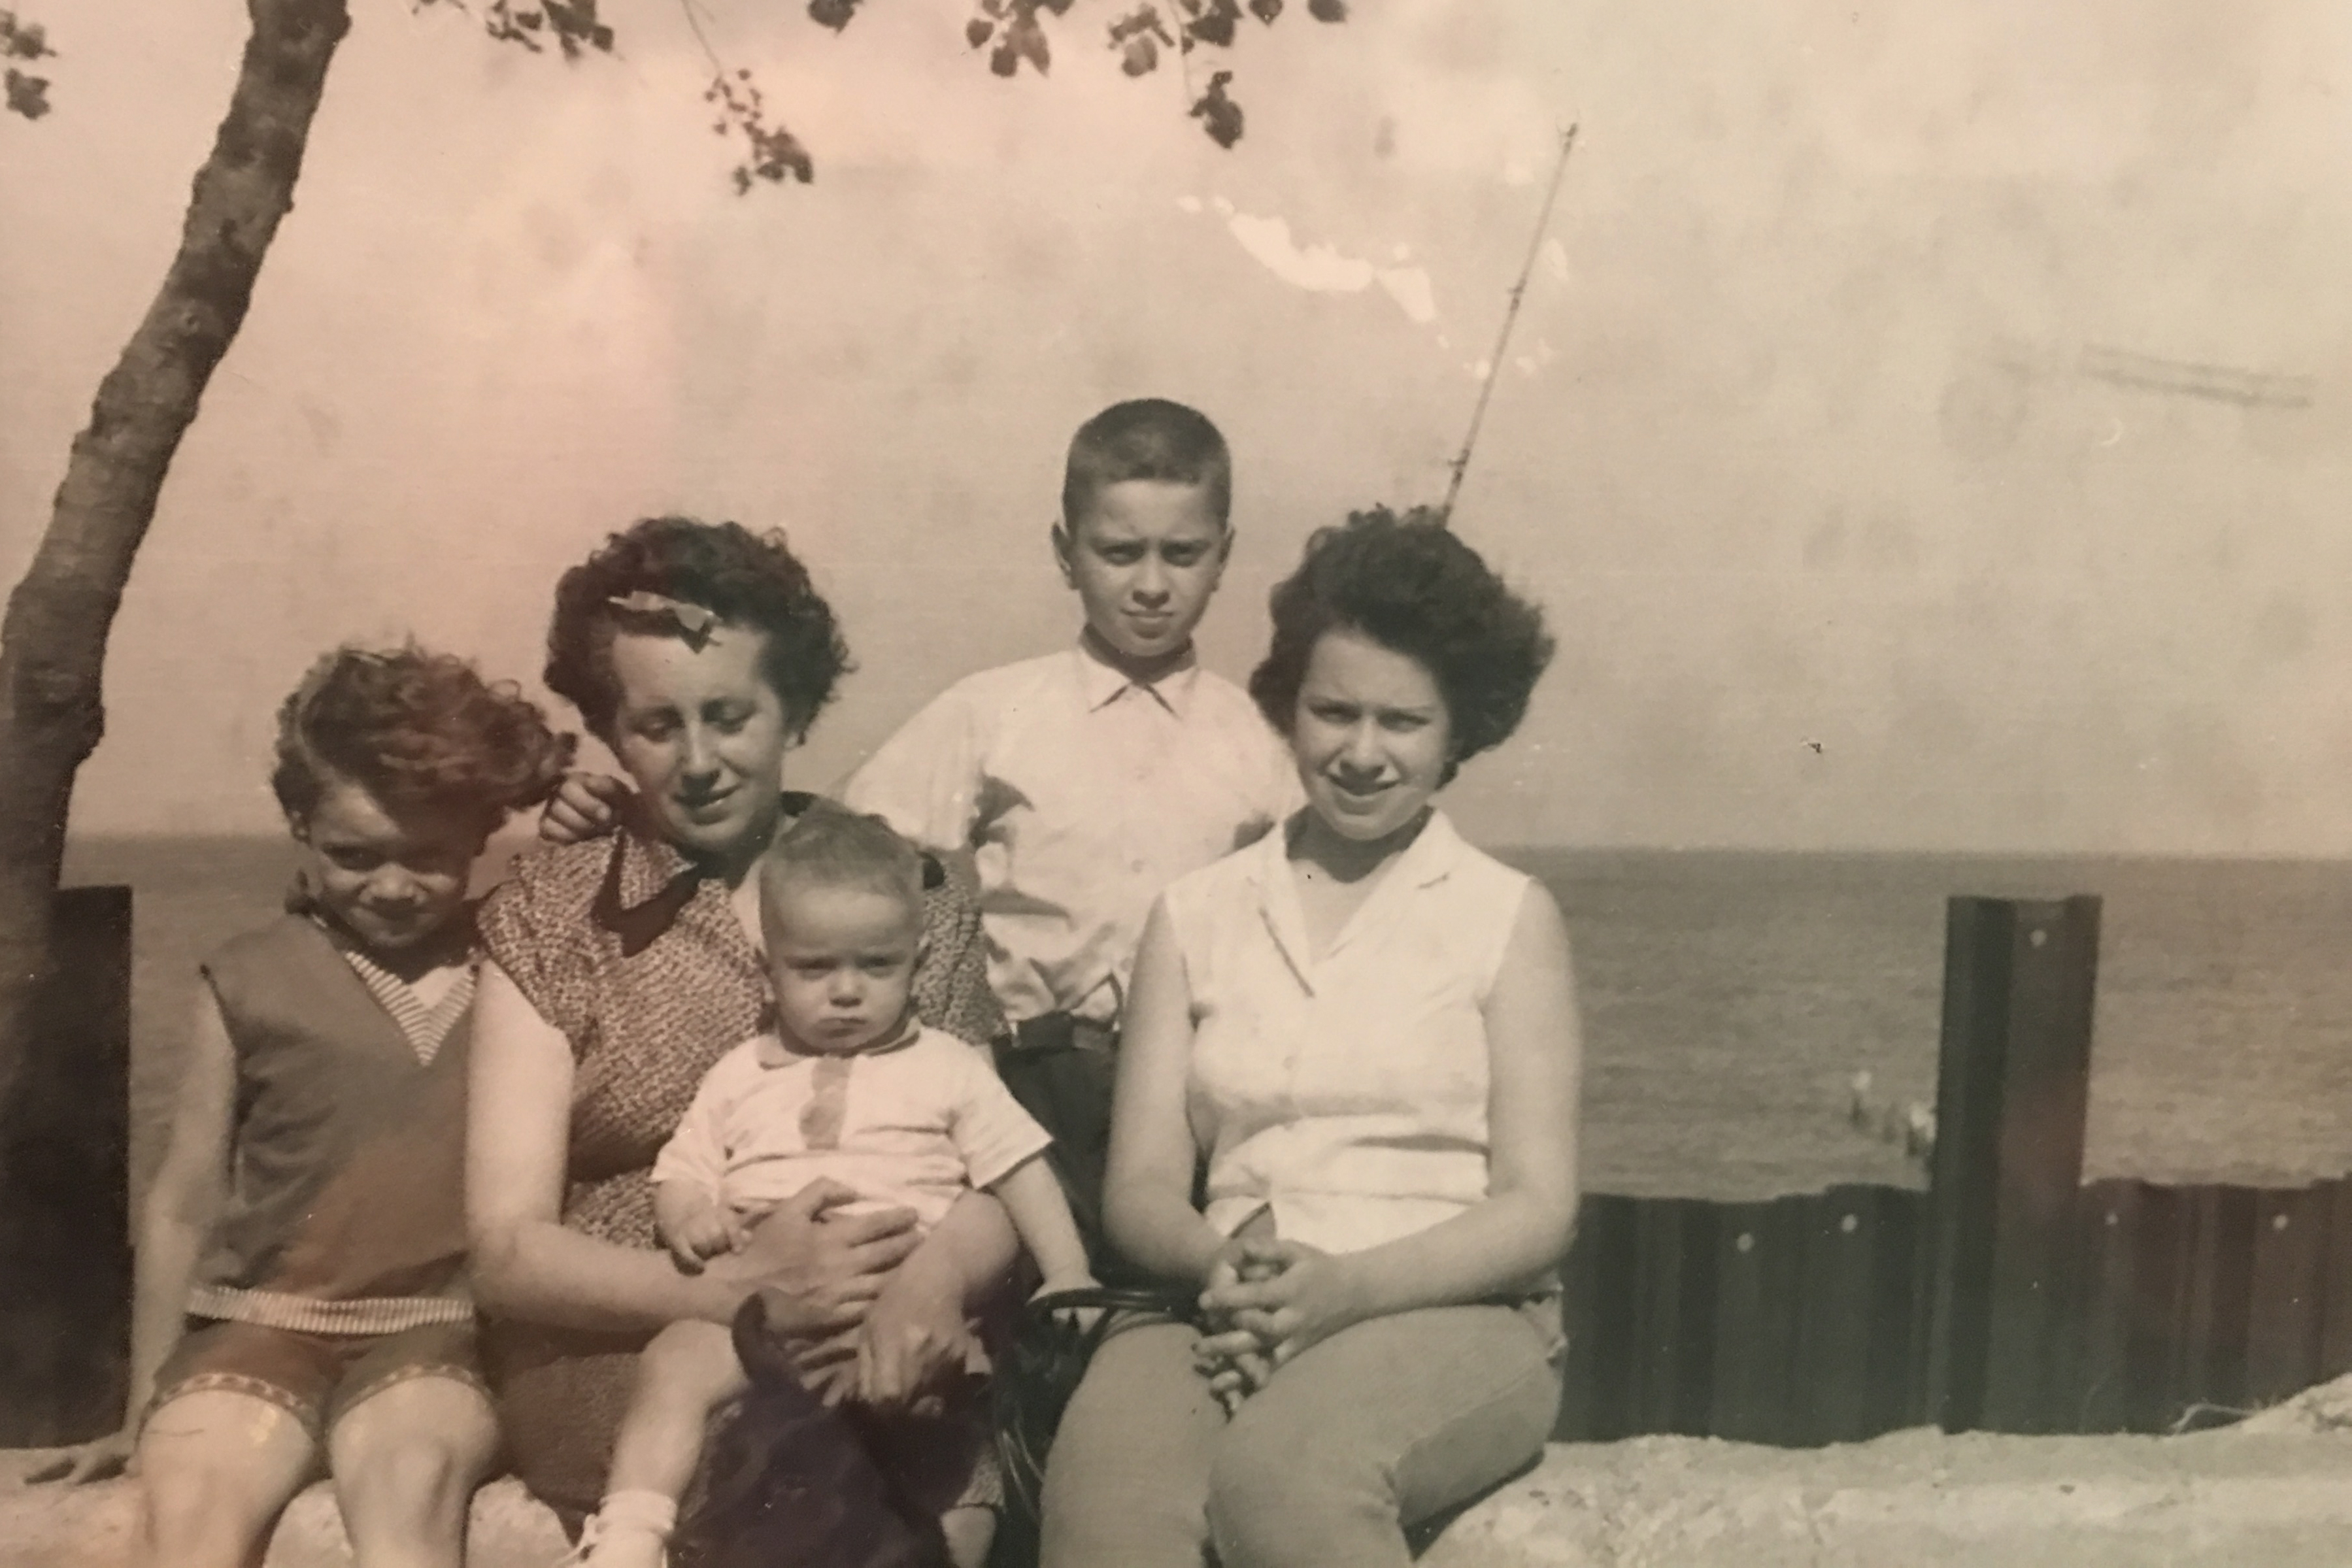 Susan Peterson, Rosalie Buky, Gabriel Buky, Judith Kepecz-Hays and John Buky  by Lake Michigan in 1963.